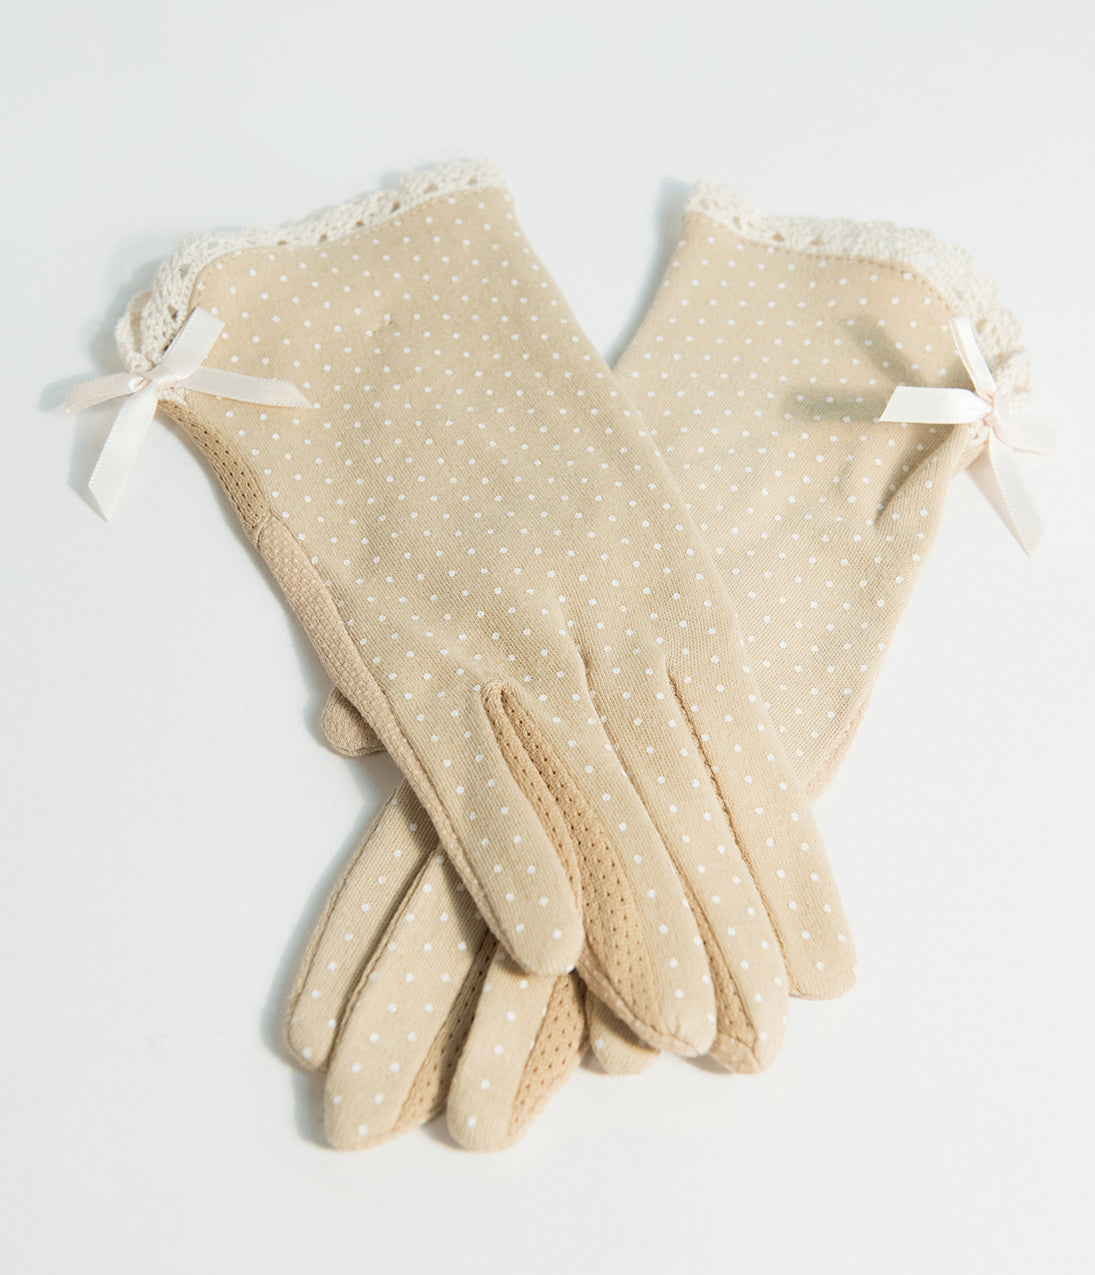 Vintage Style Gloves- Long, Wrist, Evening, Day, Leather, Lace Vintage Style Beige Polka Dot Summer Gloves $20.00 AT vintagedancer.com